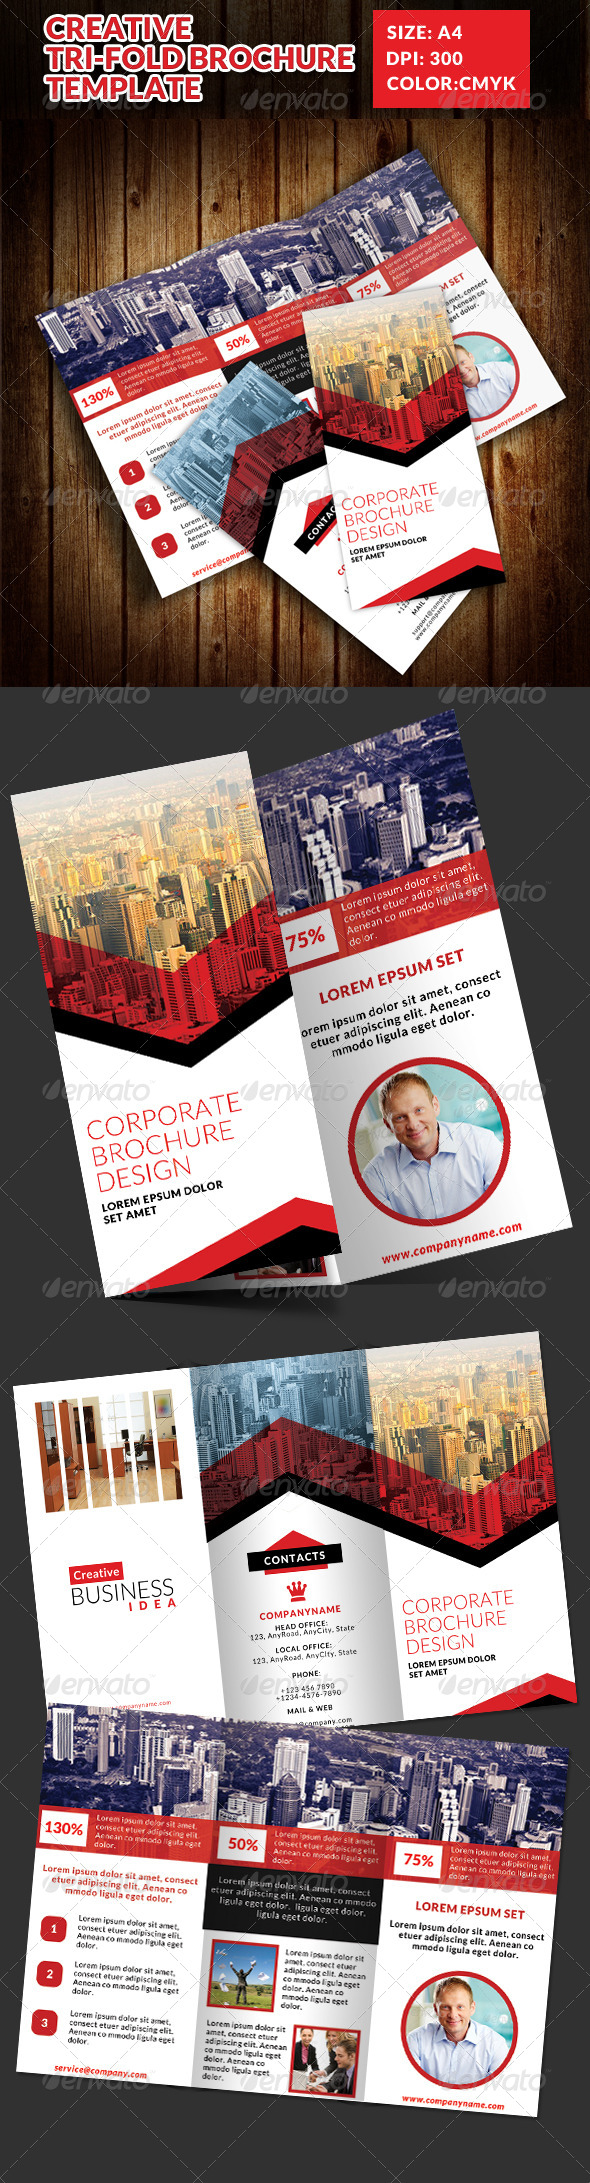 GraphicRiver Creative Tri-Fold Brochures Template 2 7543399